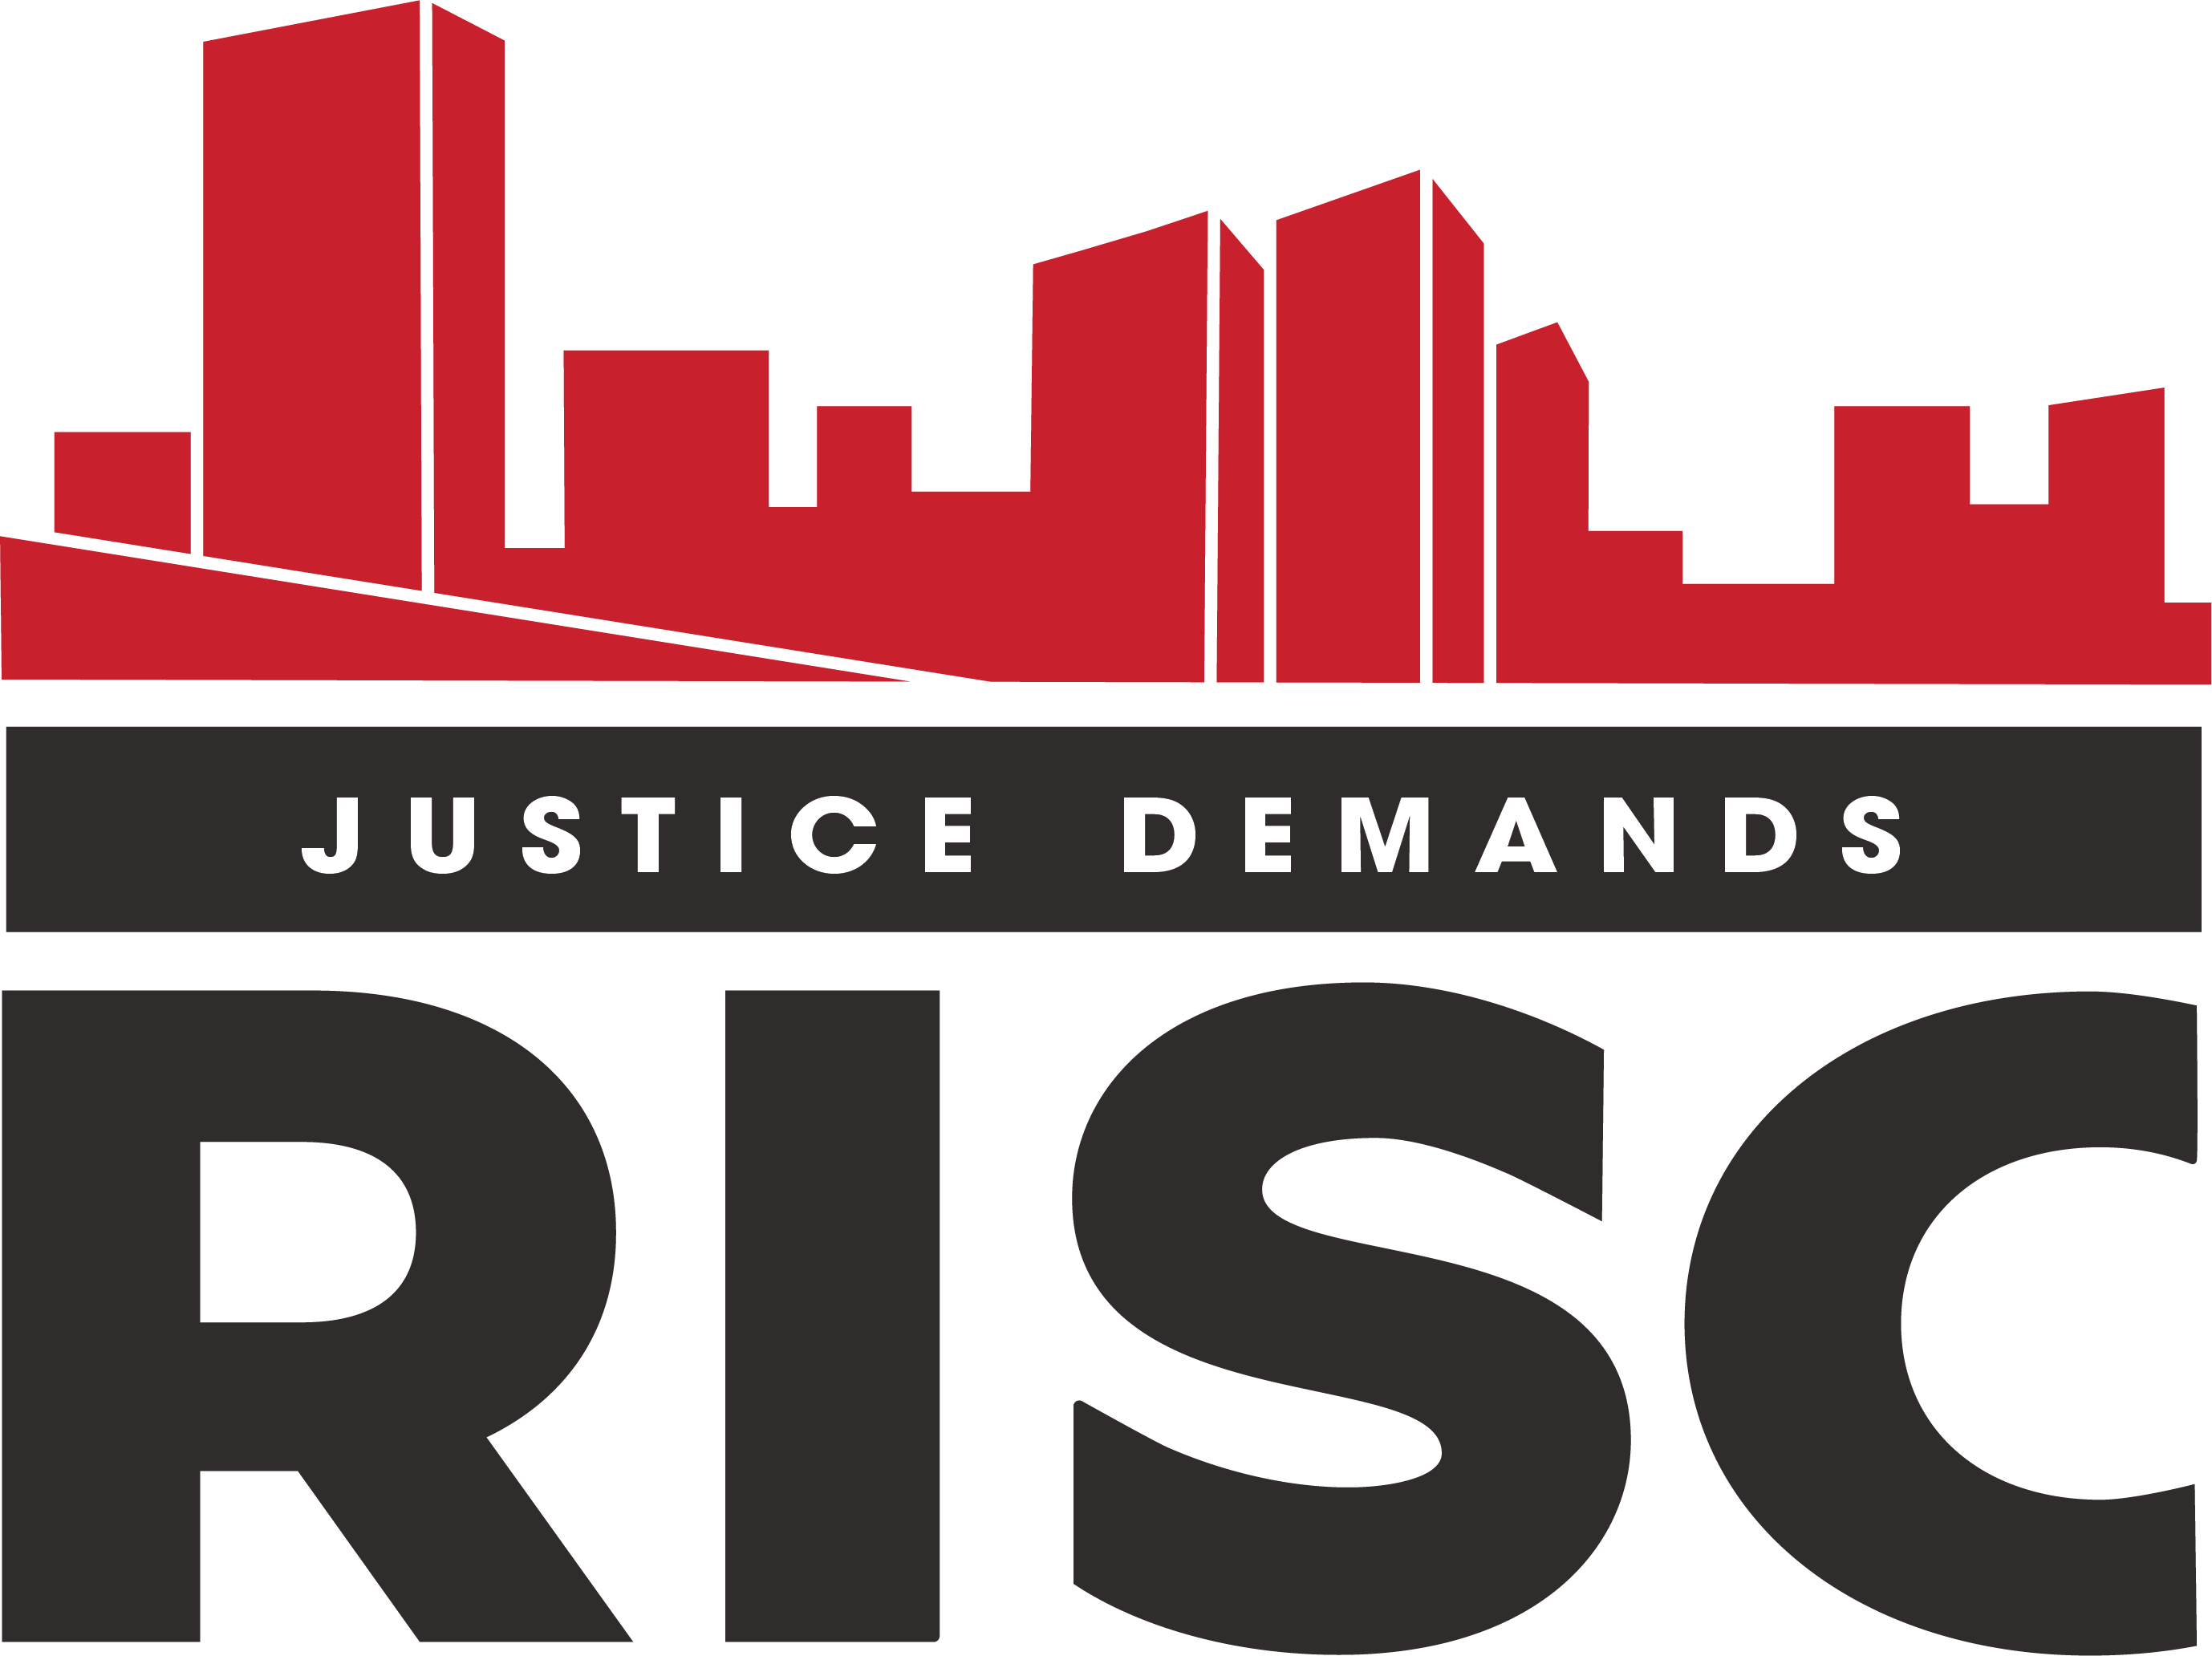 RISC means Richmonders Involved To Strengthen Our Communities